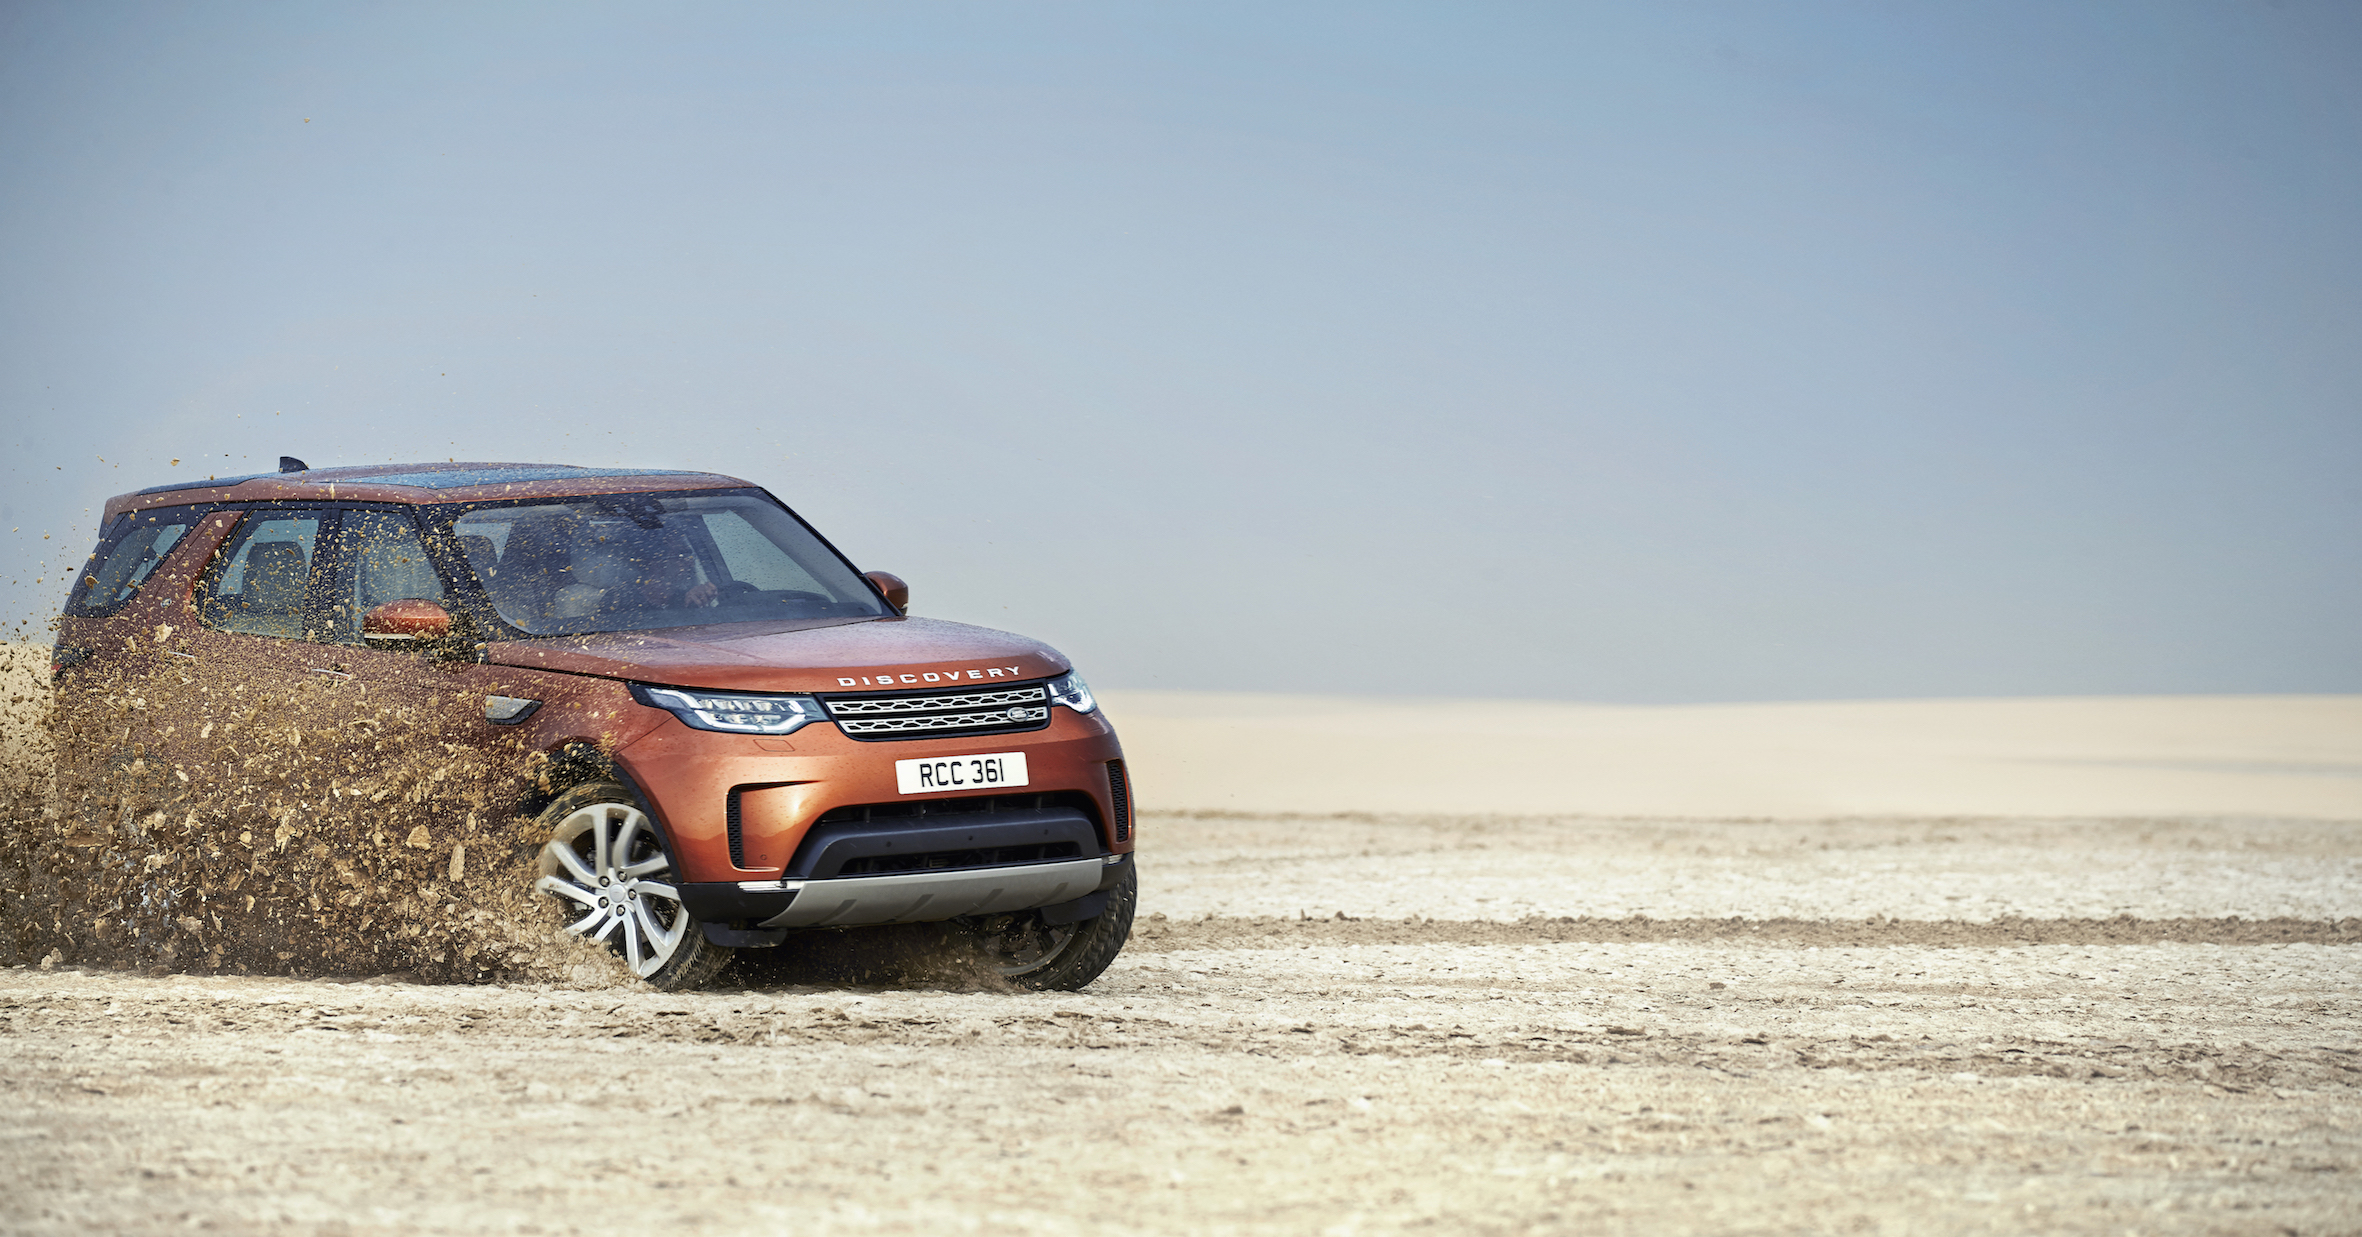 Land Rover The Verge